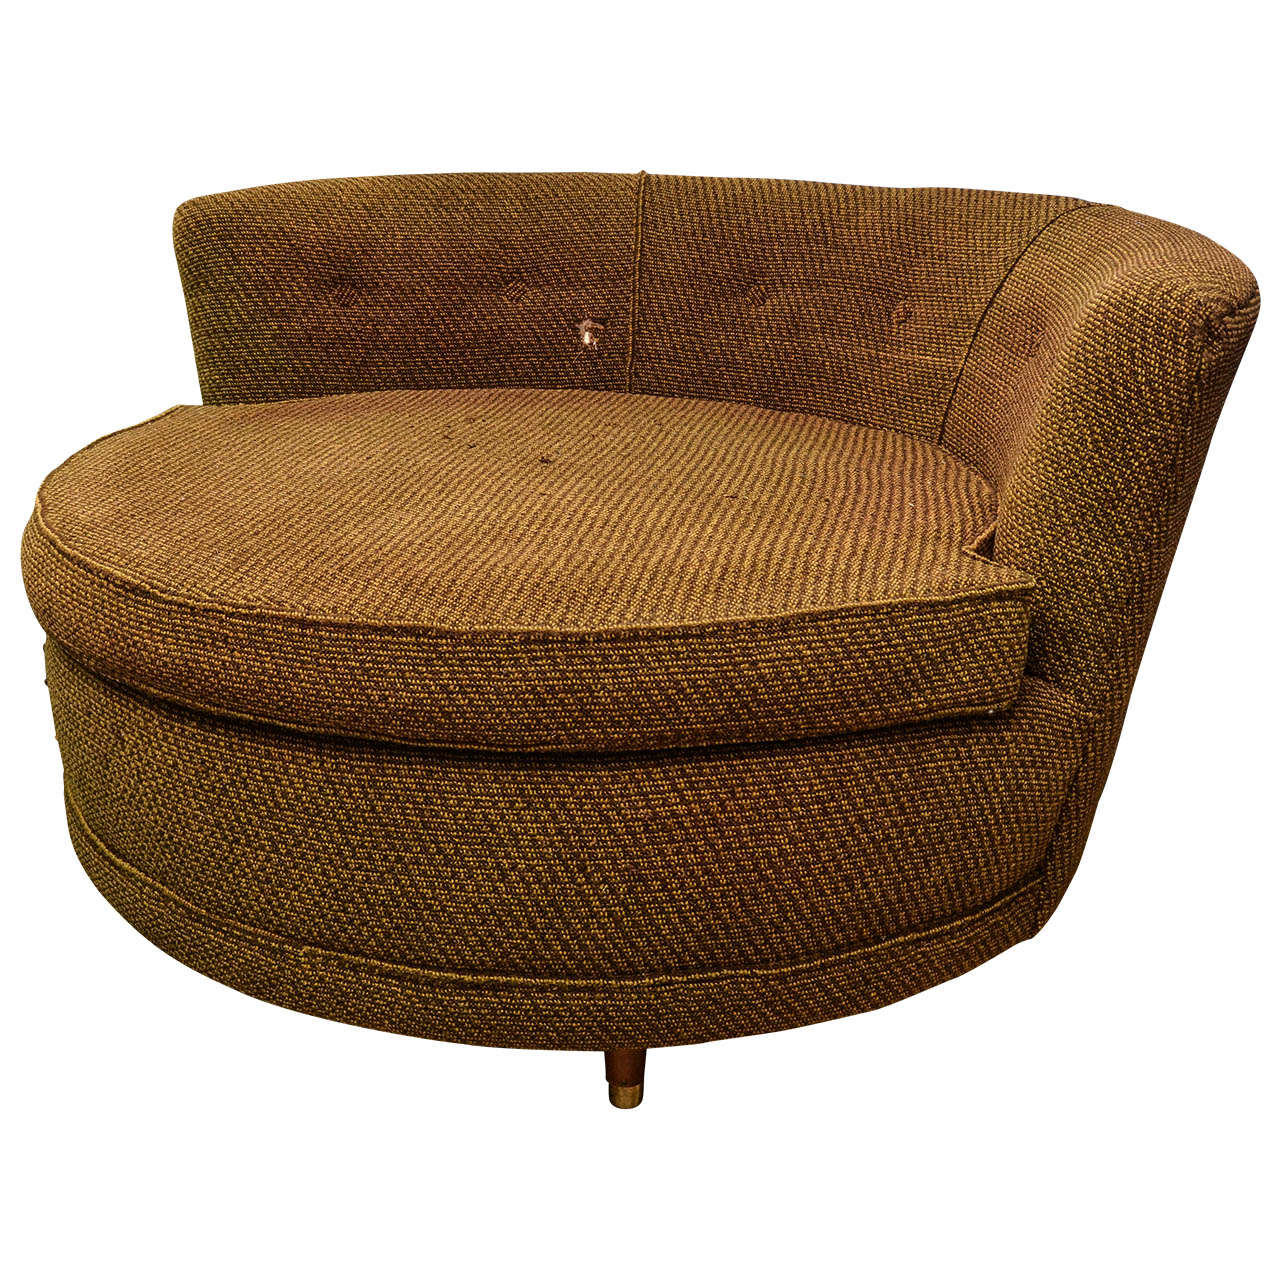 American Circular Oversized Chair For Sale at 1stdibs